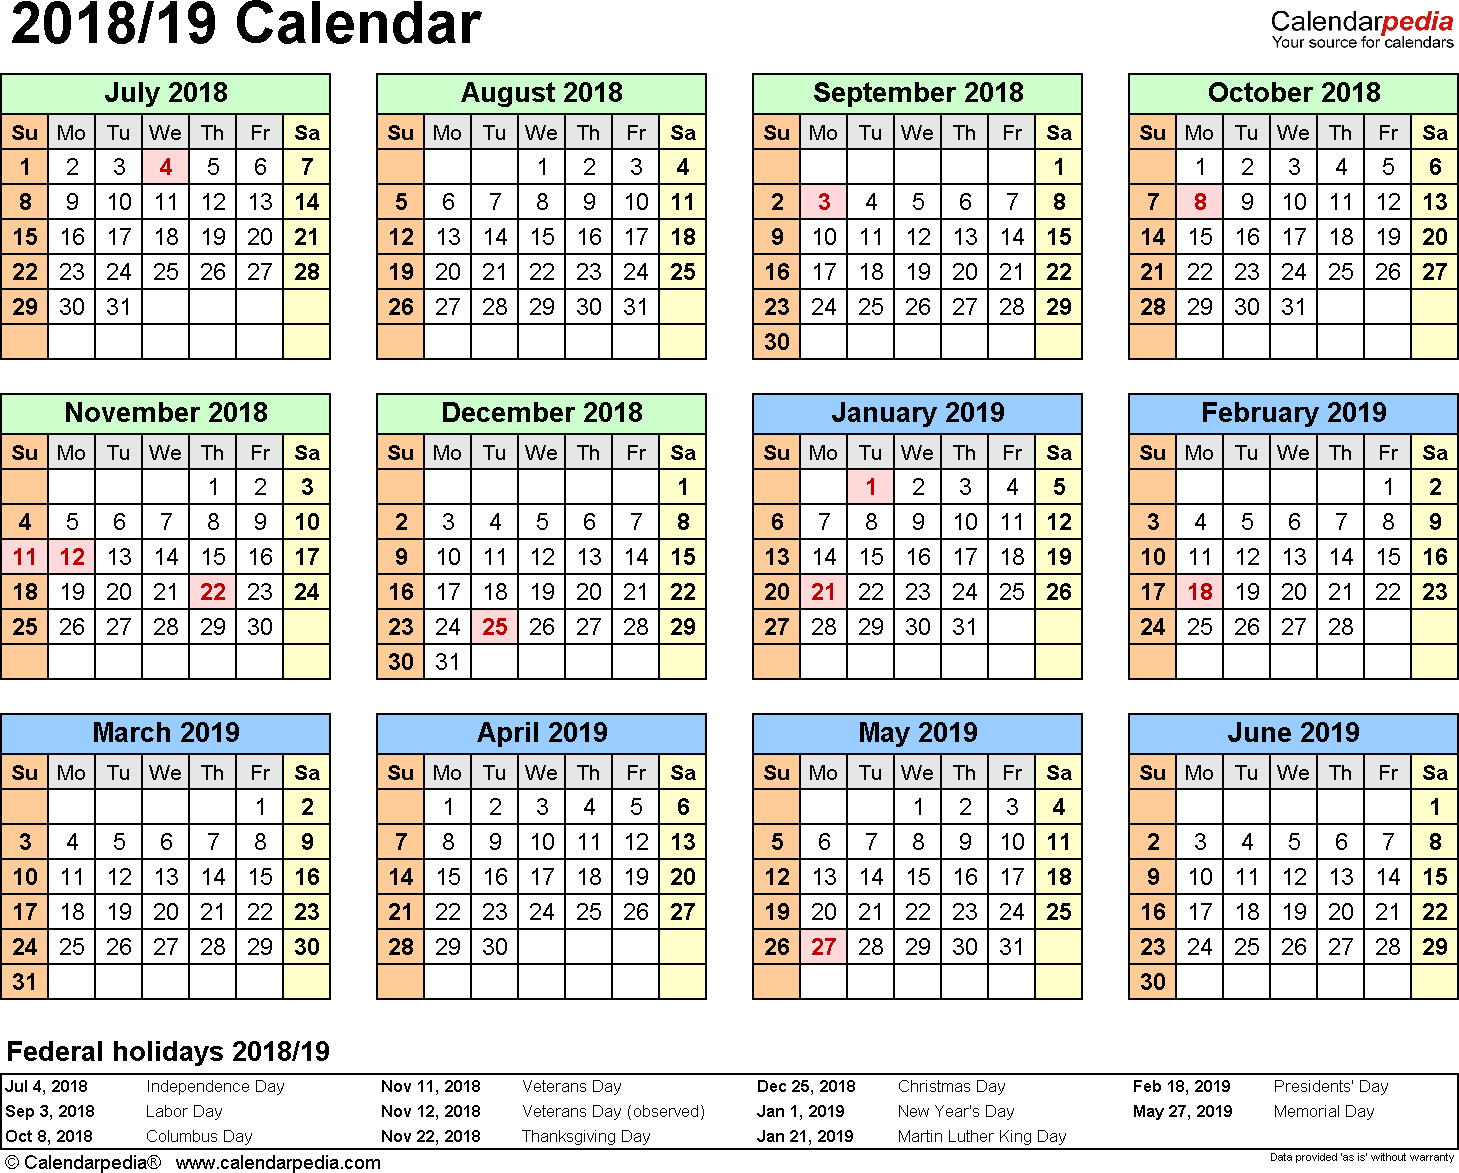 2019 Calendar Landscape Year At A Glance In Color With Split 2018 19 July To June Excel Templates